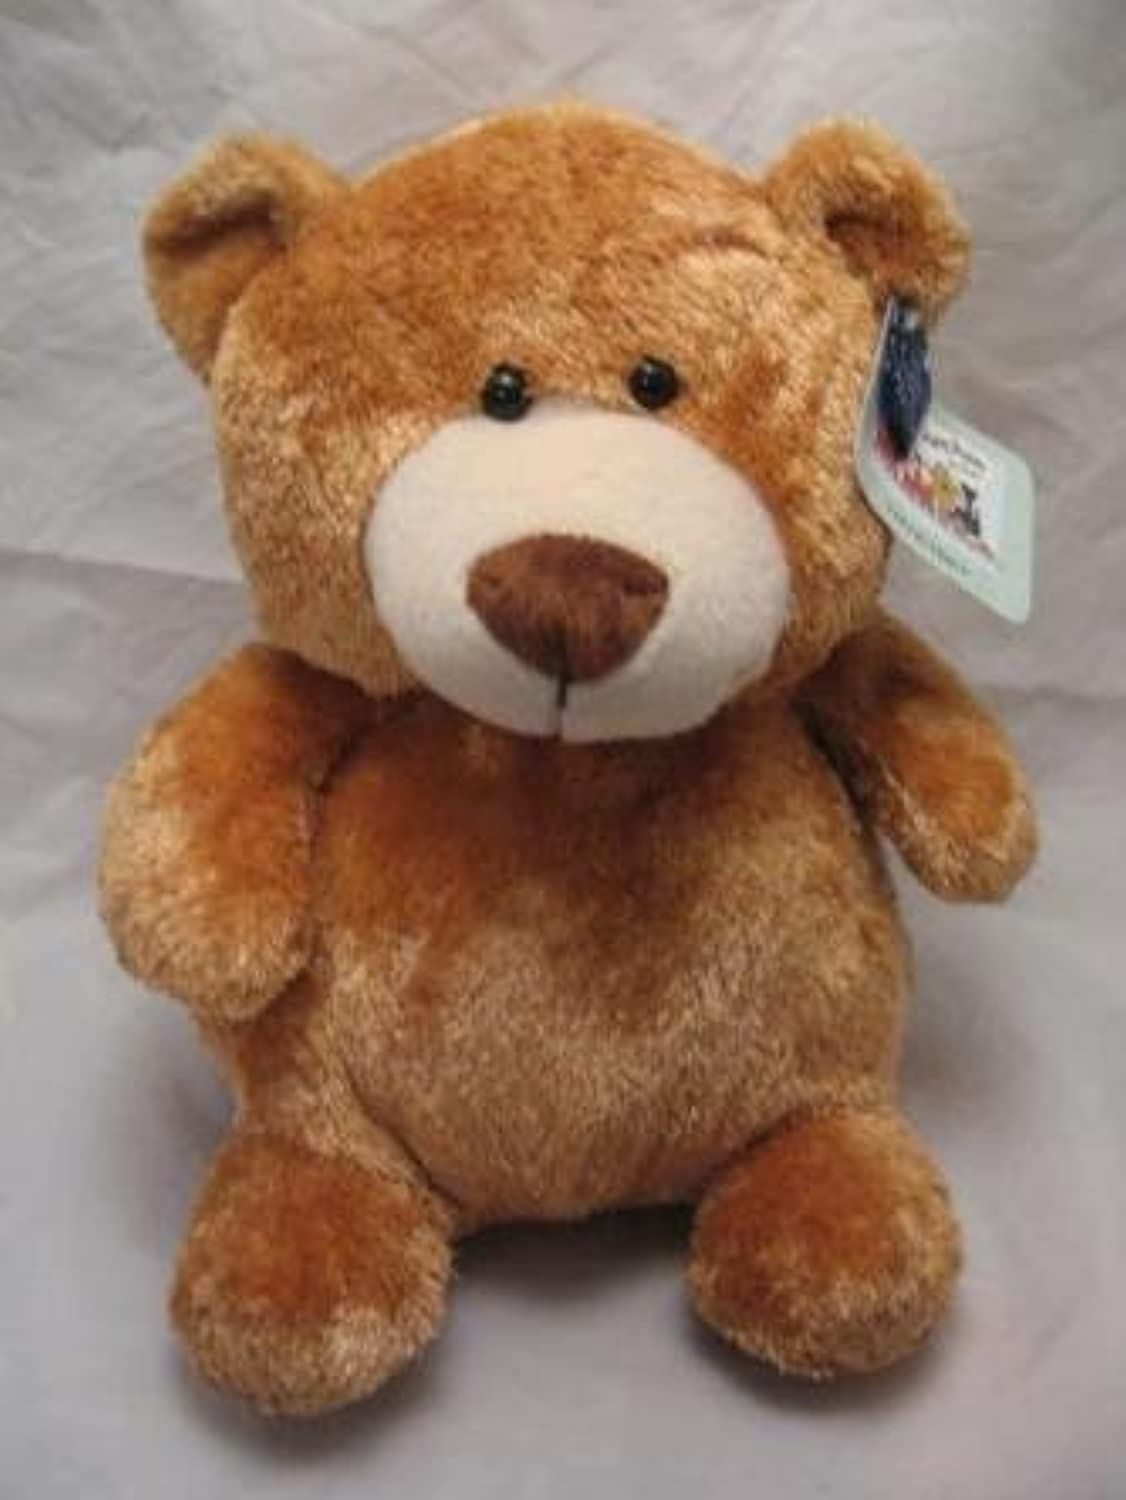 Toy Teddy Bear Stuffed Animal Plush Toy by Russ